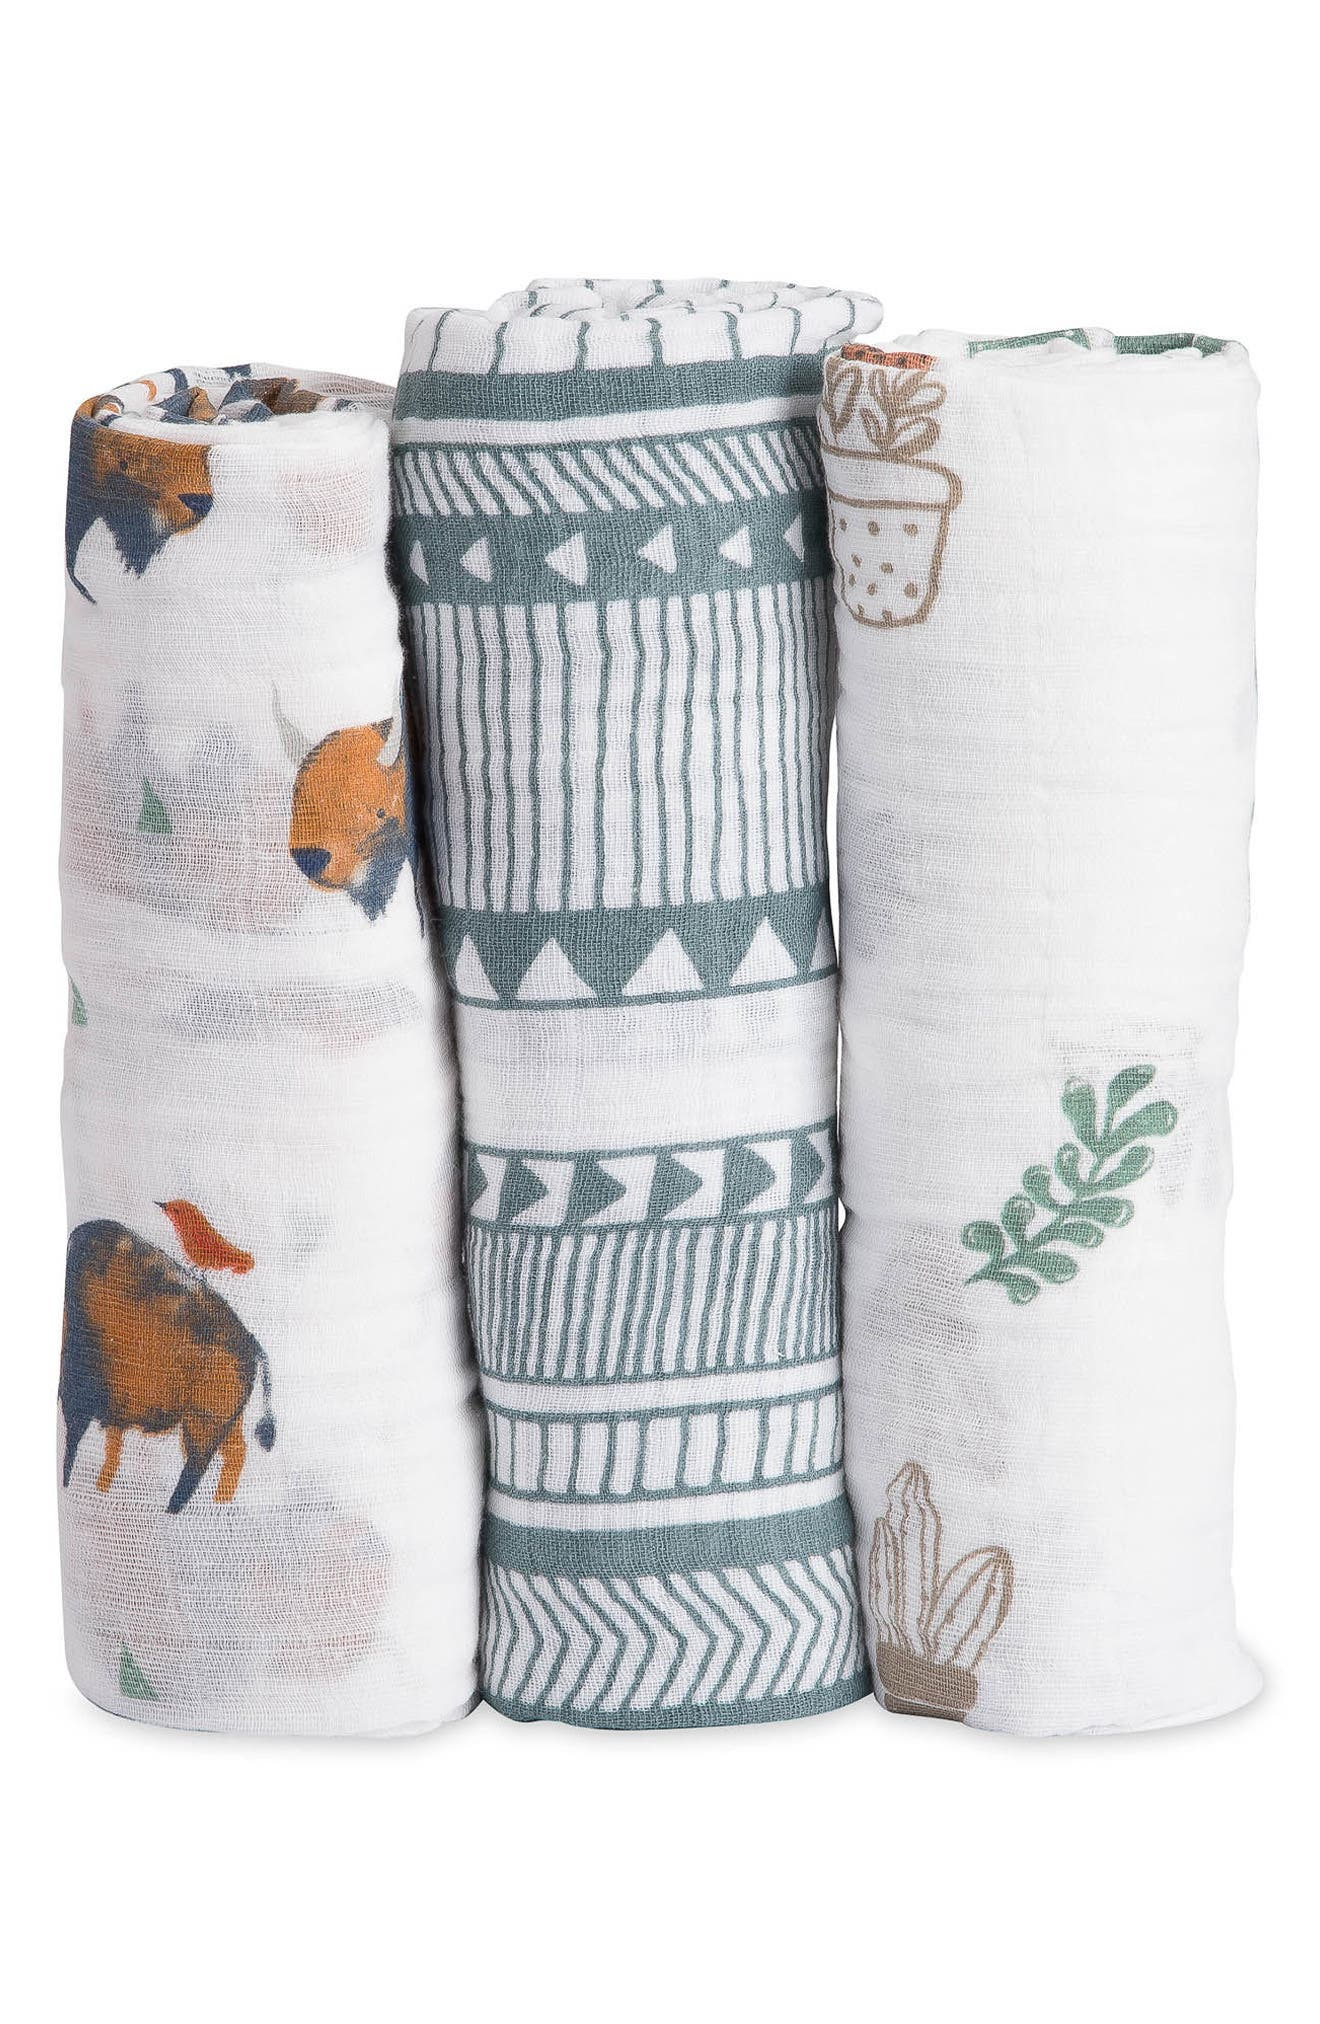 3-Pack Cotton Muslin Blankets,                             Main thumbnail 1, color,                             BISON